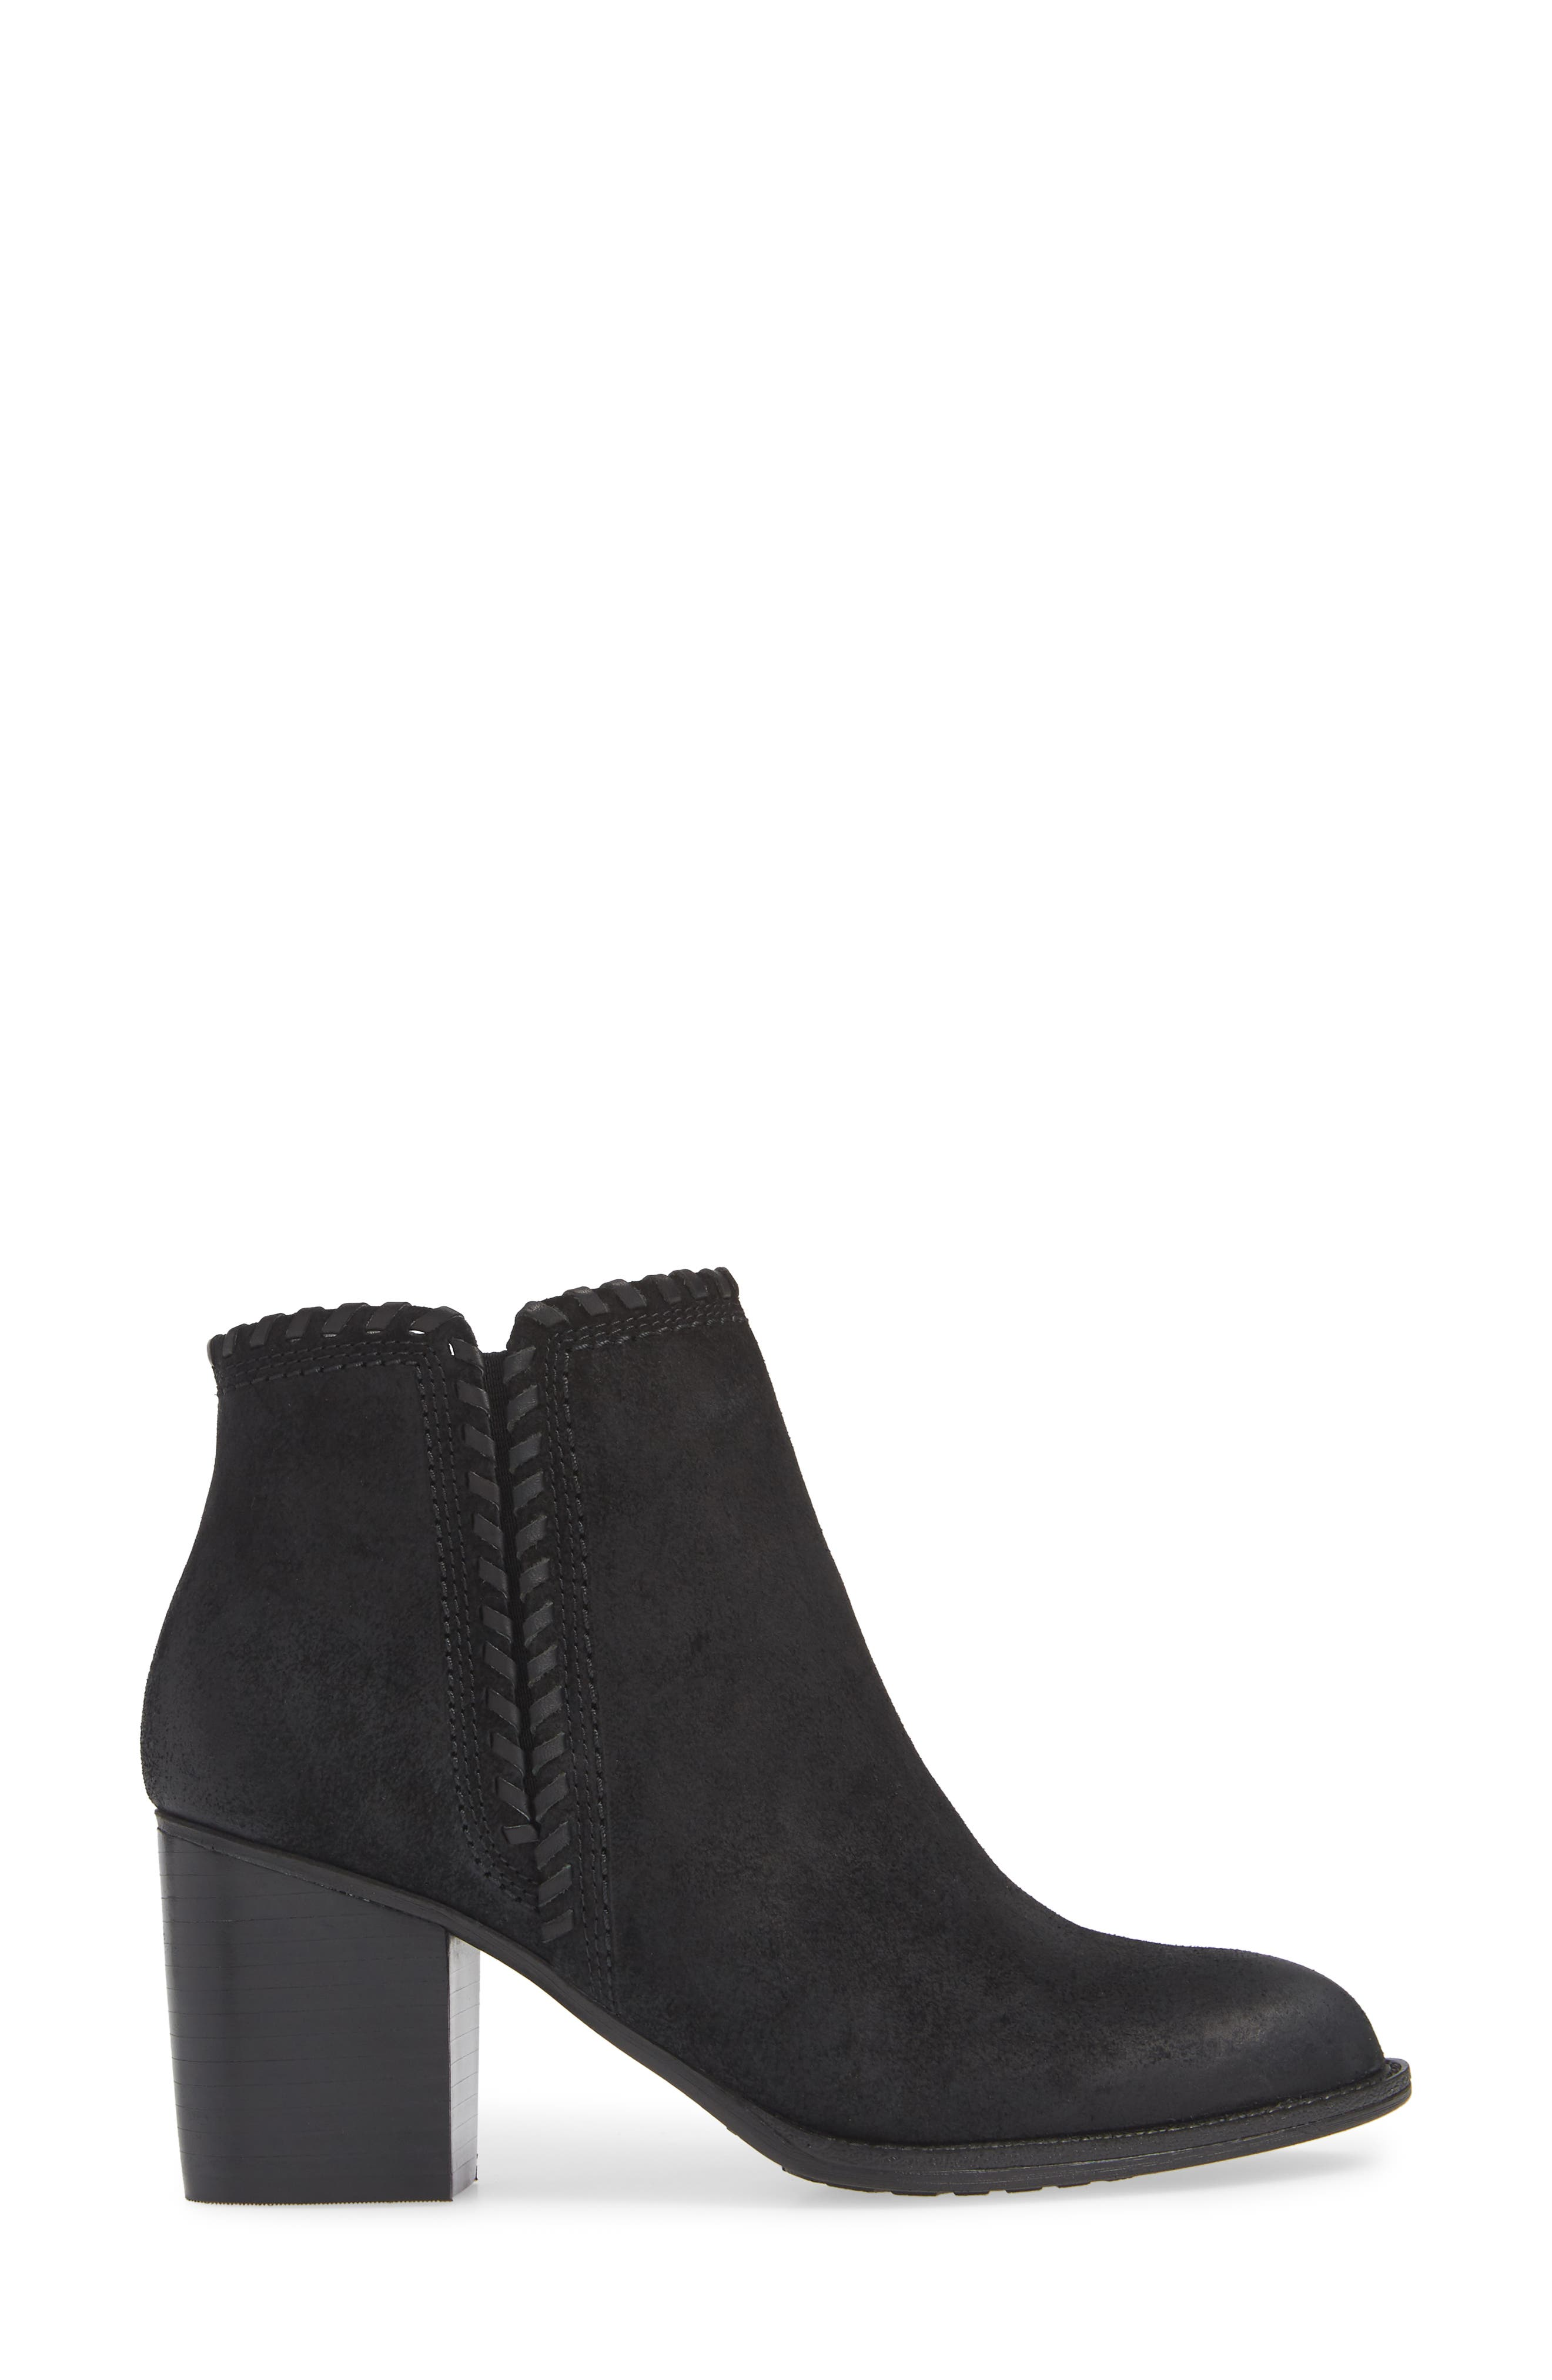 Wilton Bootie,                             Alternate thumbnail 3, color,                             BLACK SUEDE